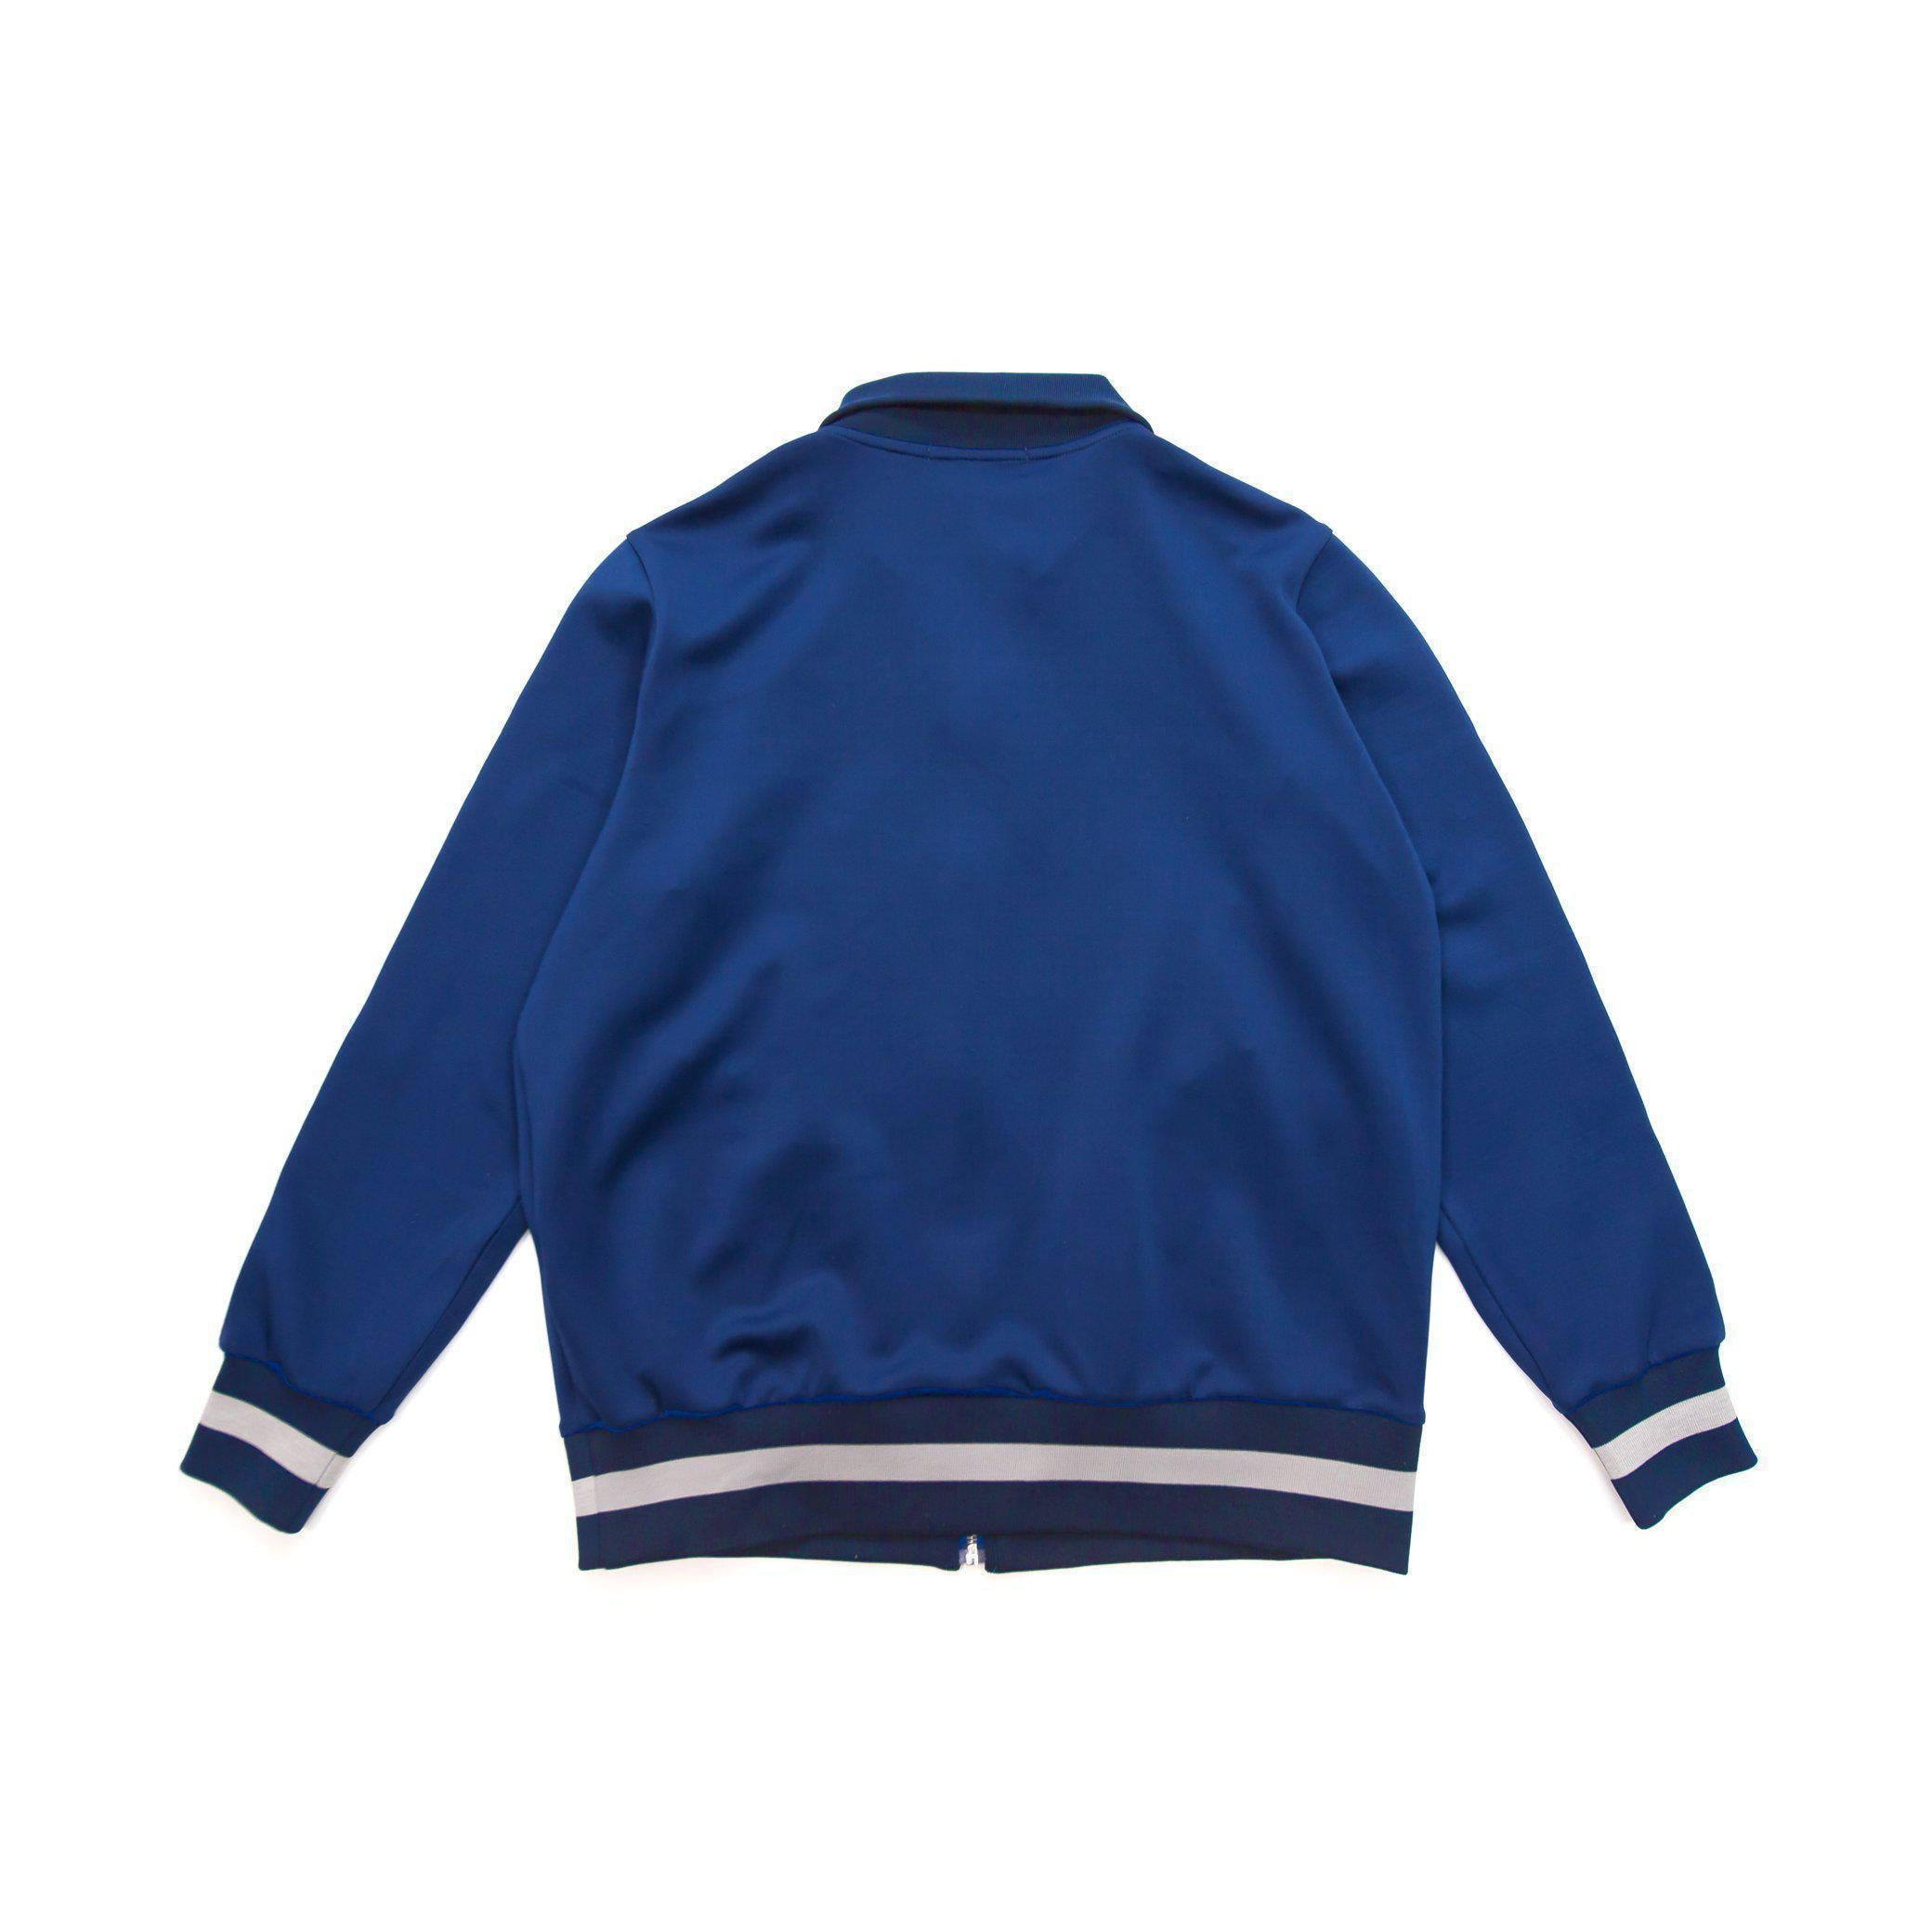 TRACK JACKET - DEEP BLUE-MILFDAD